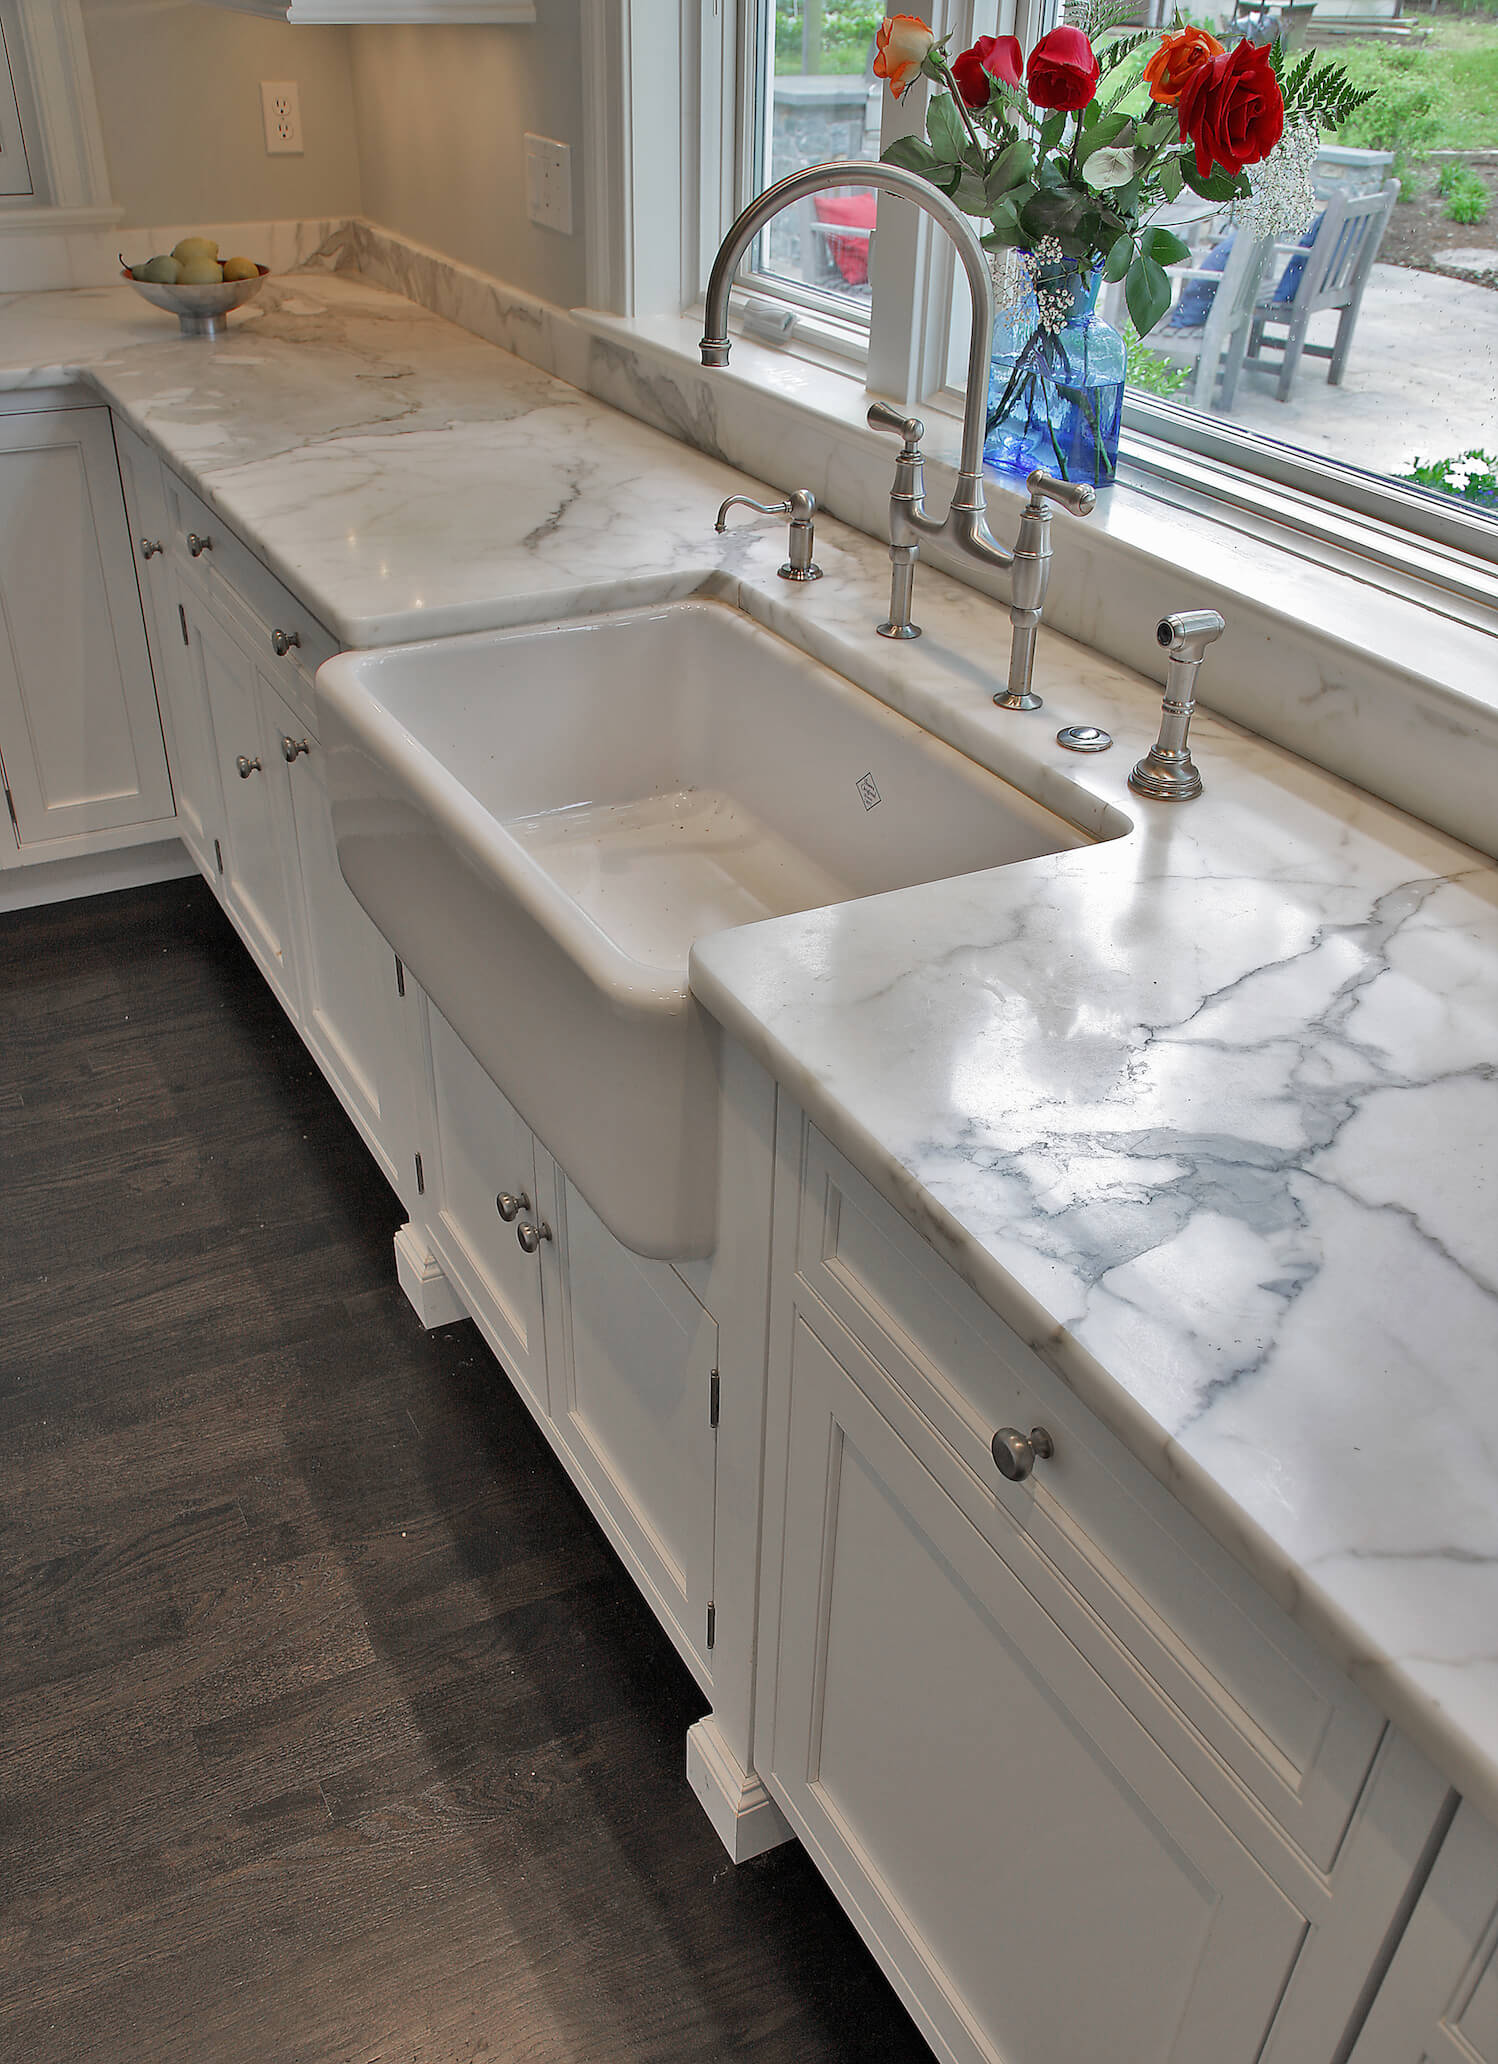 Angling slightly down, we take in the new farmhouse sink and white cabinetry with fresh hardware. The oak flooring was stained dark as per the owners' preference.